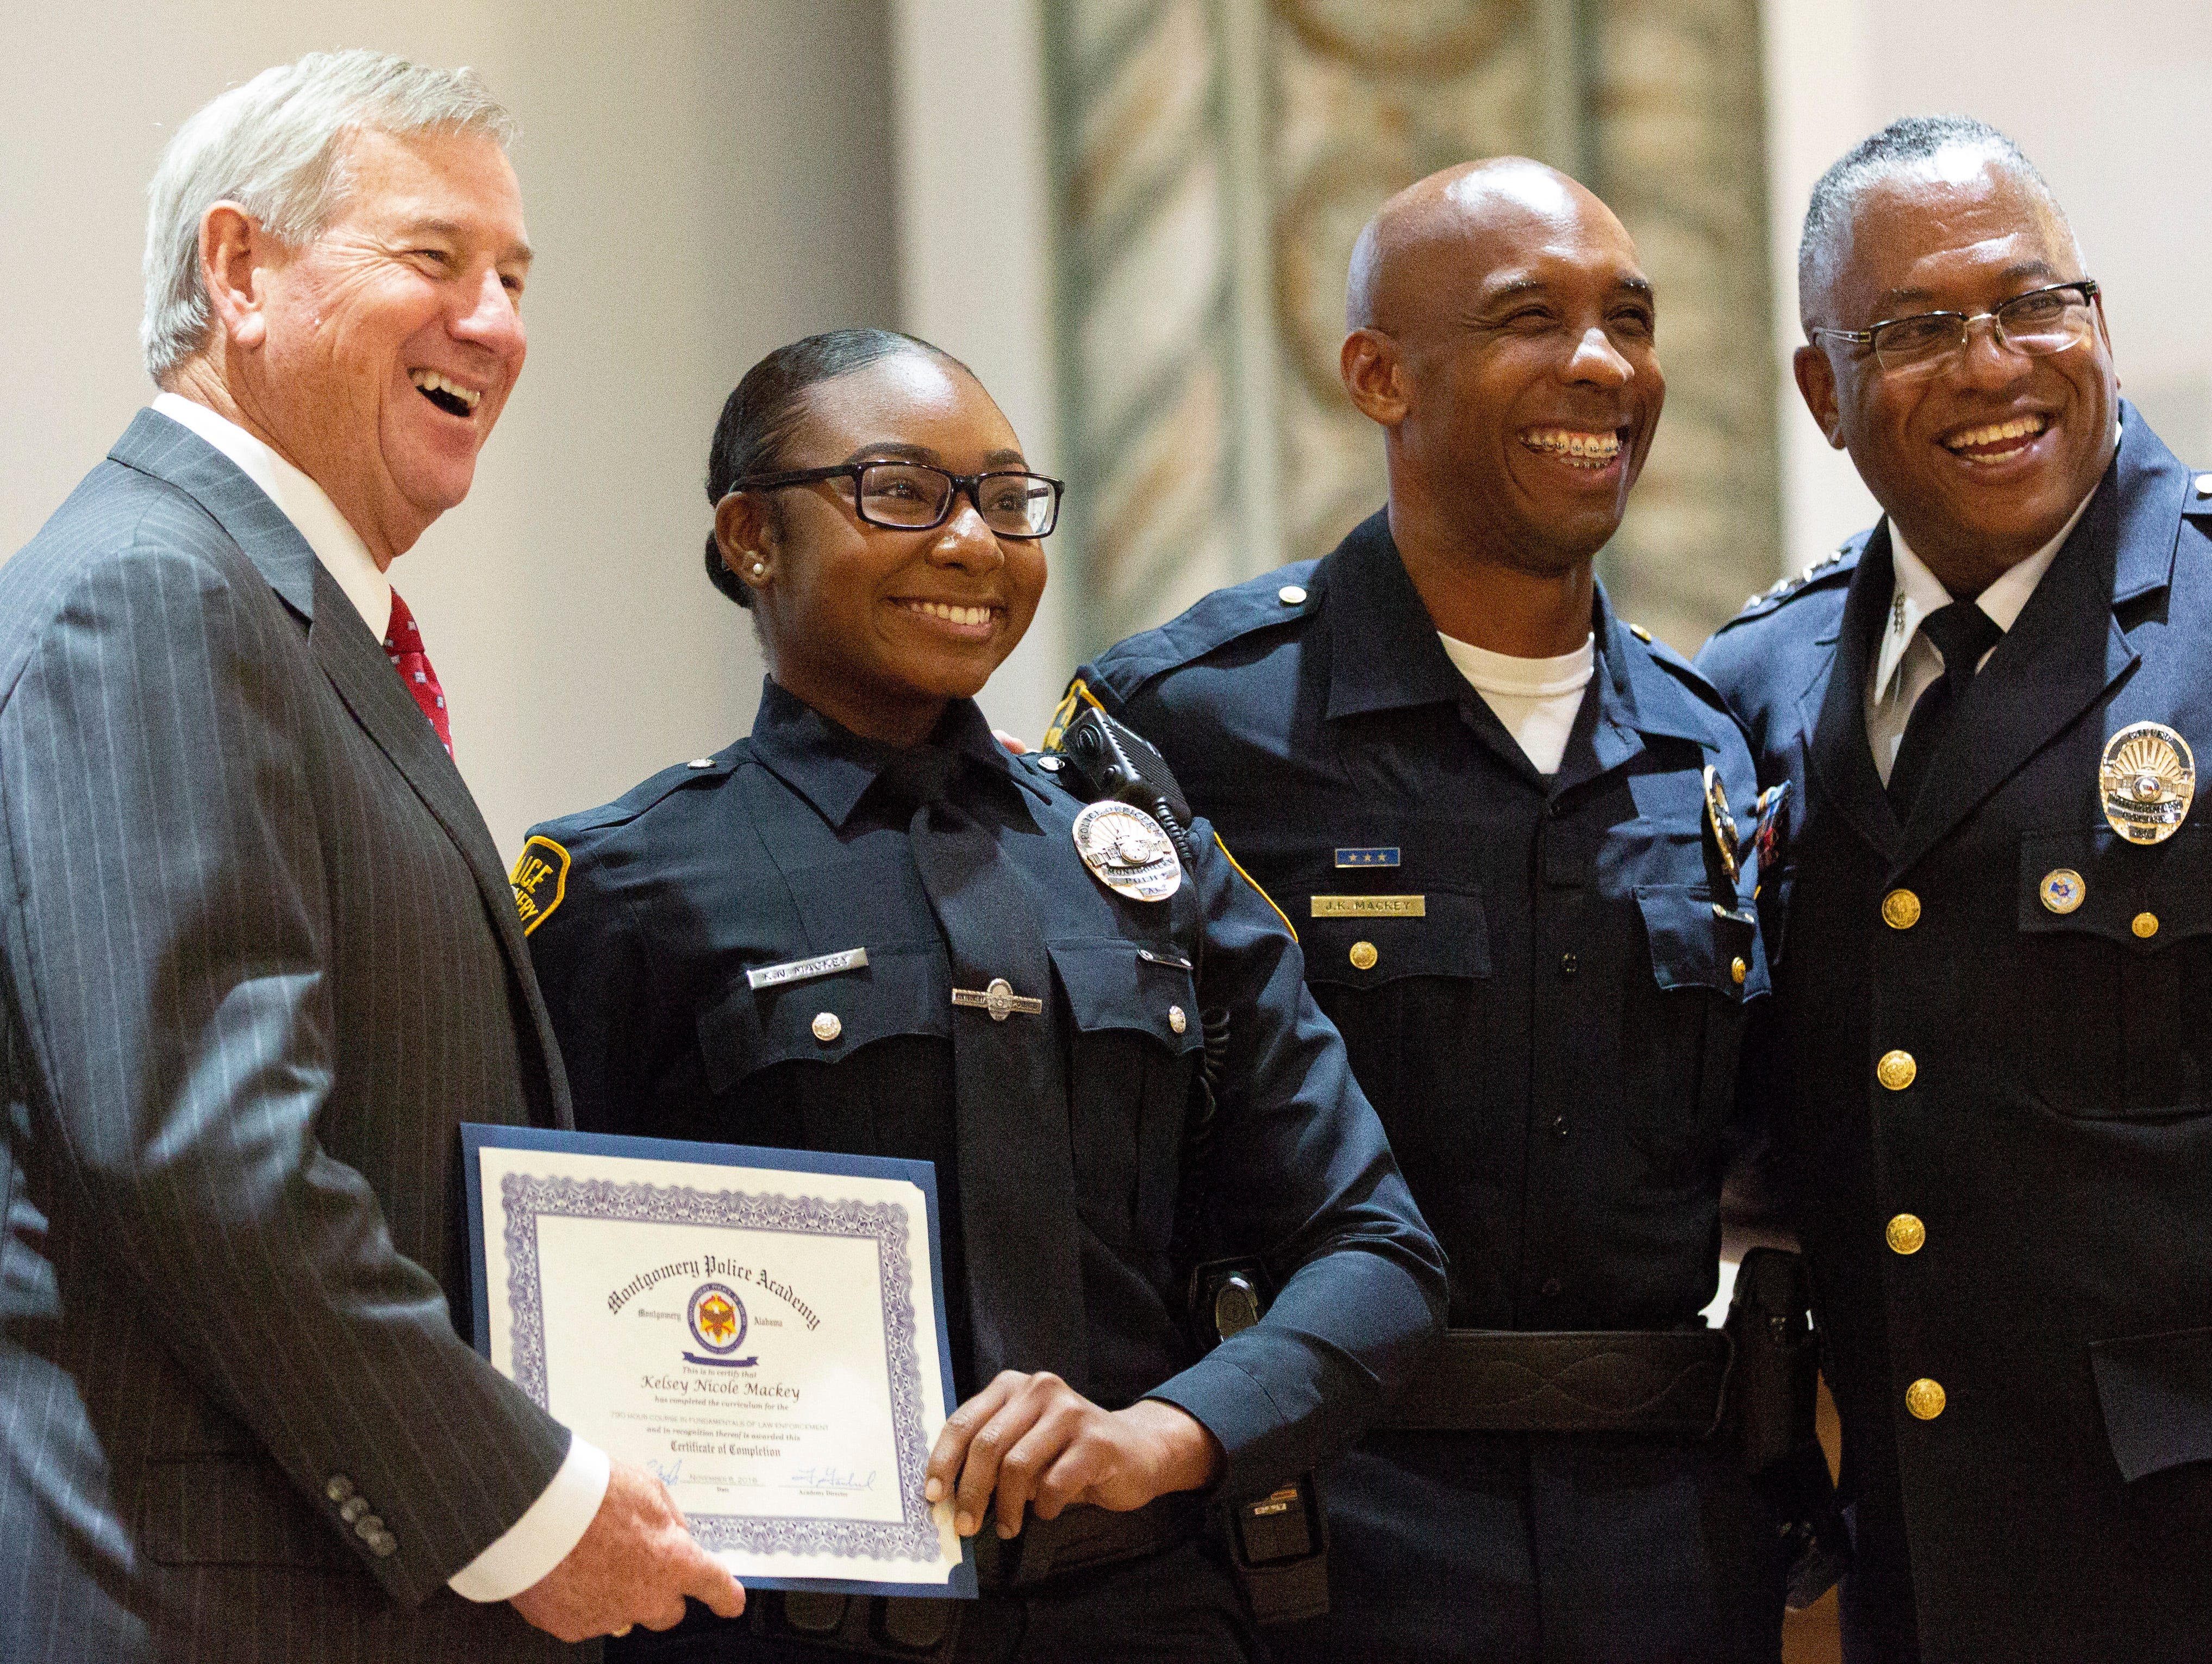 Montgomery police officer Kelsey Mackey poses for a photo after graduating from the academy.